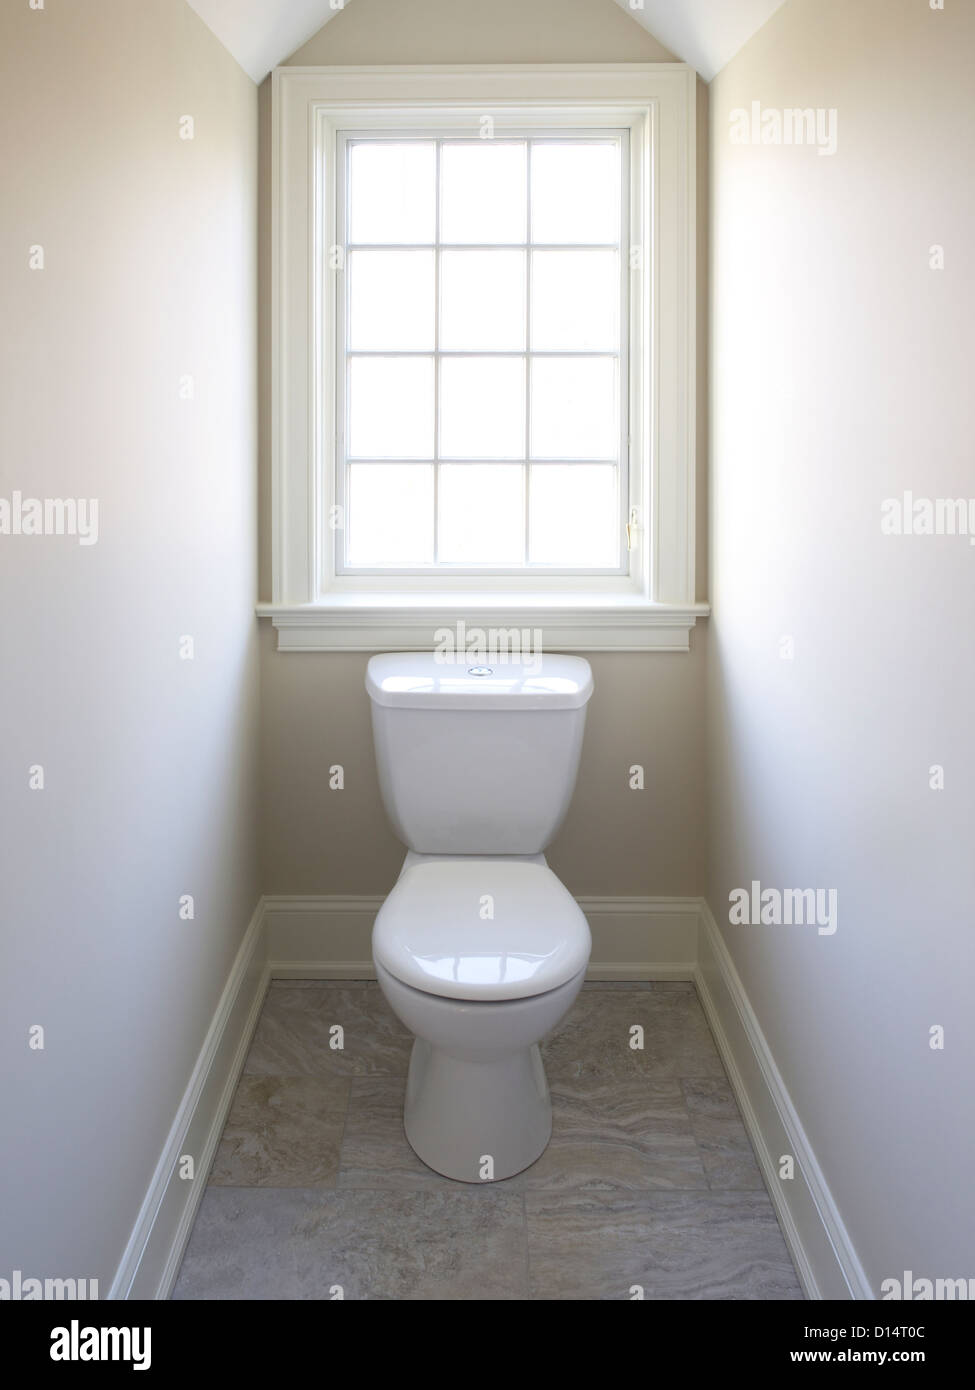 Toilet window in very small room stock photo royalty for Very small toilet ideas